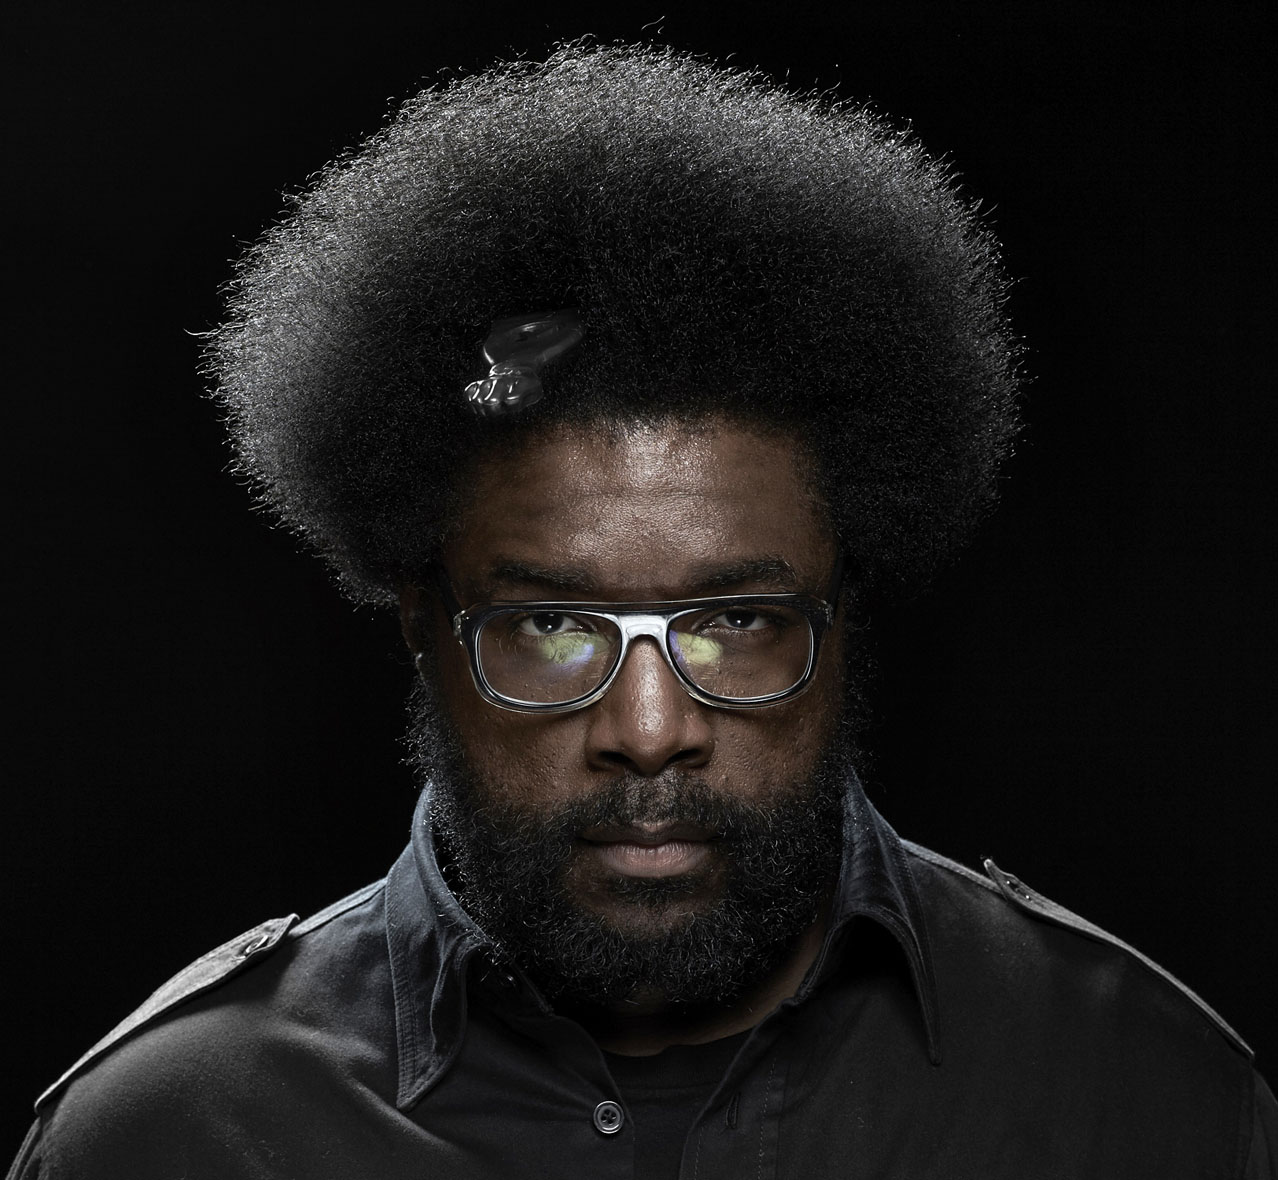 Questlove for the IOC photo by Monte Isom